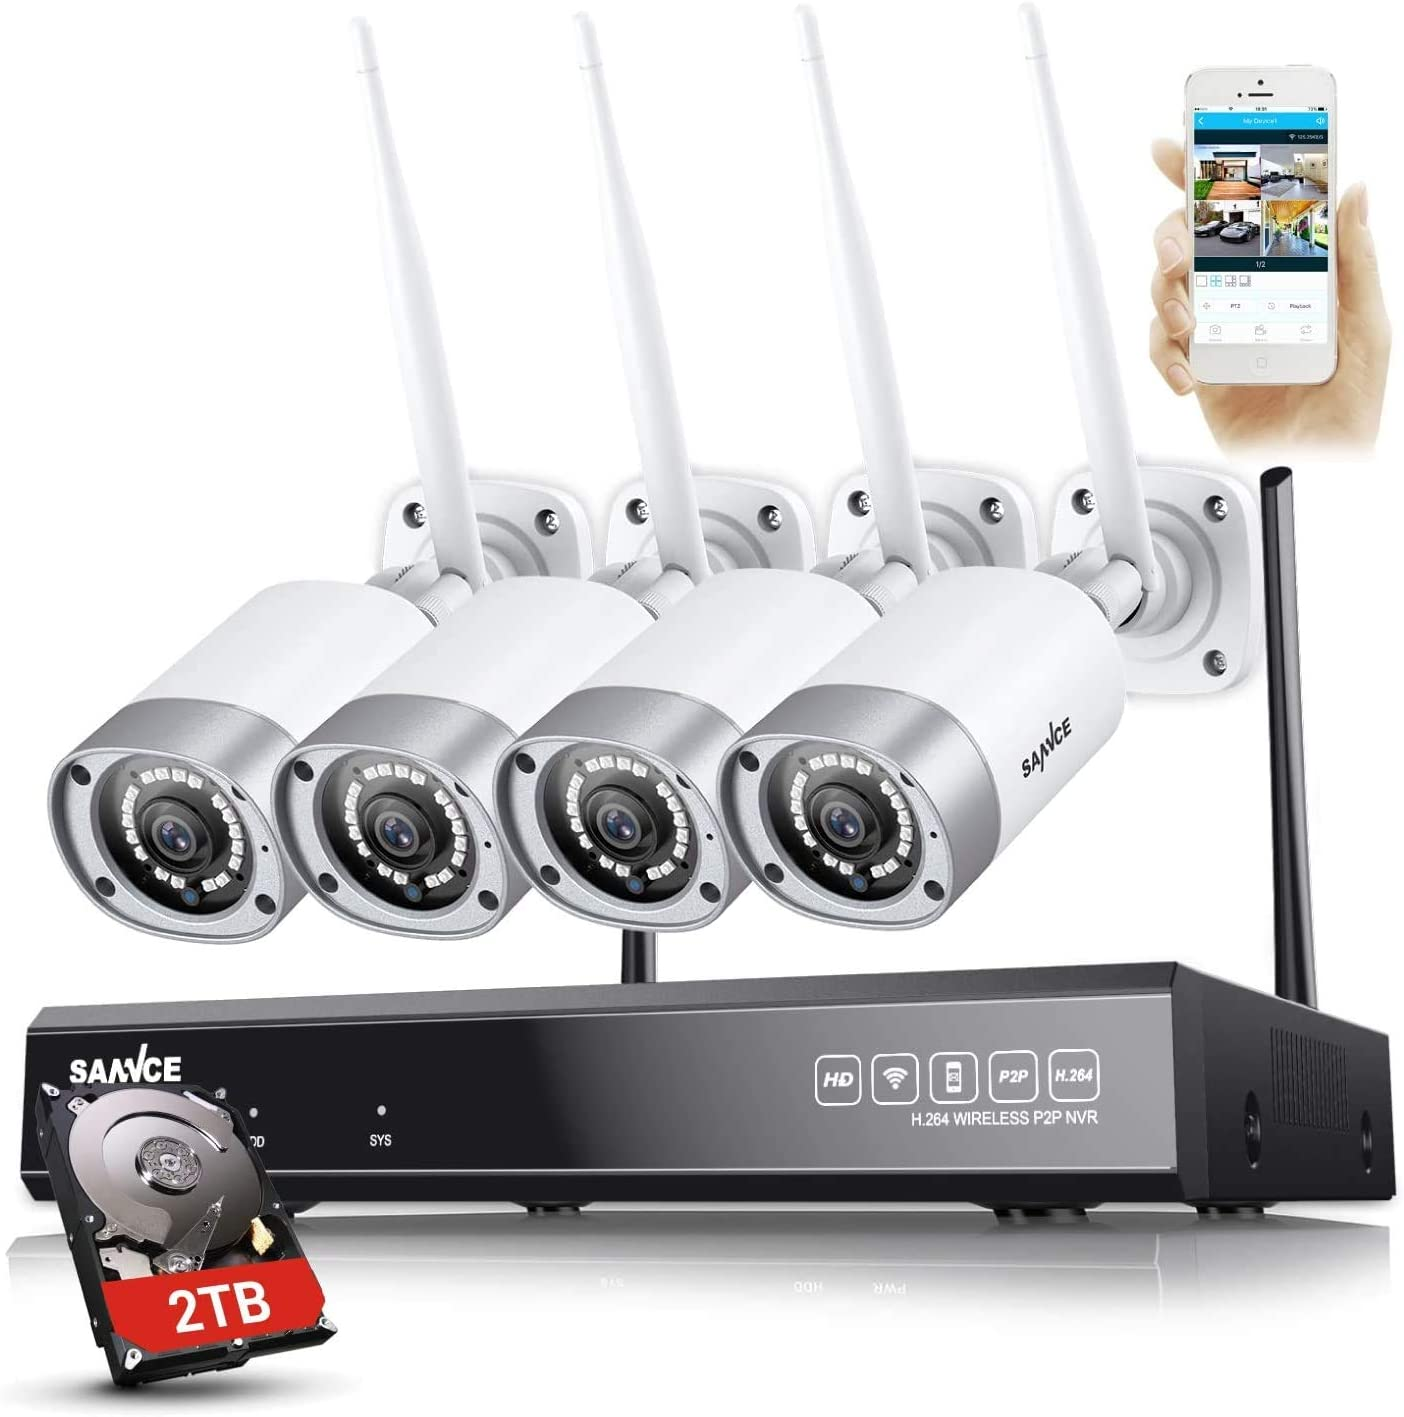 2TB Hard Drive Pre-Installed SANNCE Wireless Security Camera System,8-Channel FULL HD 1080P Home Video Security System,4pcs 2.0MP Indoor Outdoor WiFi IP Cameras,P2P,Night Vision,Remote View,Free APP